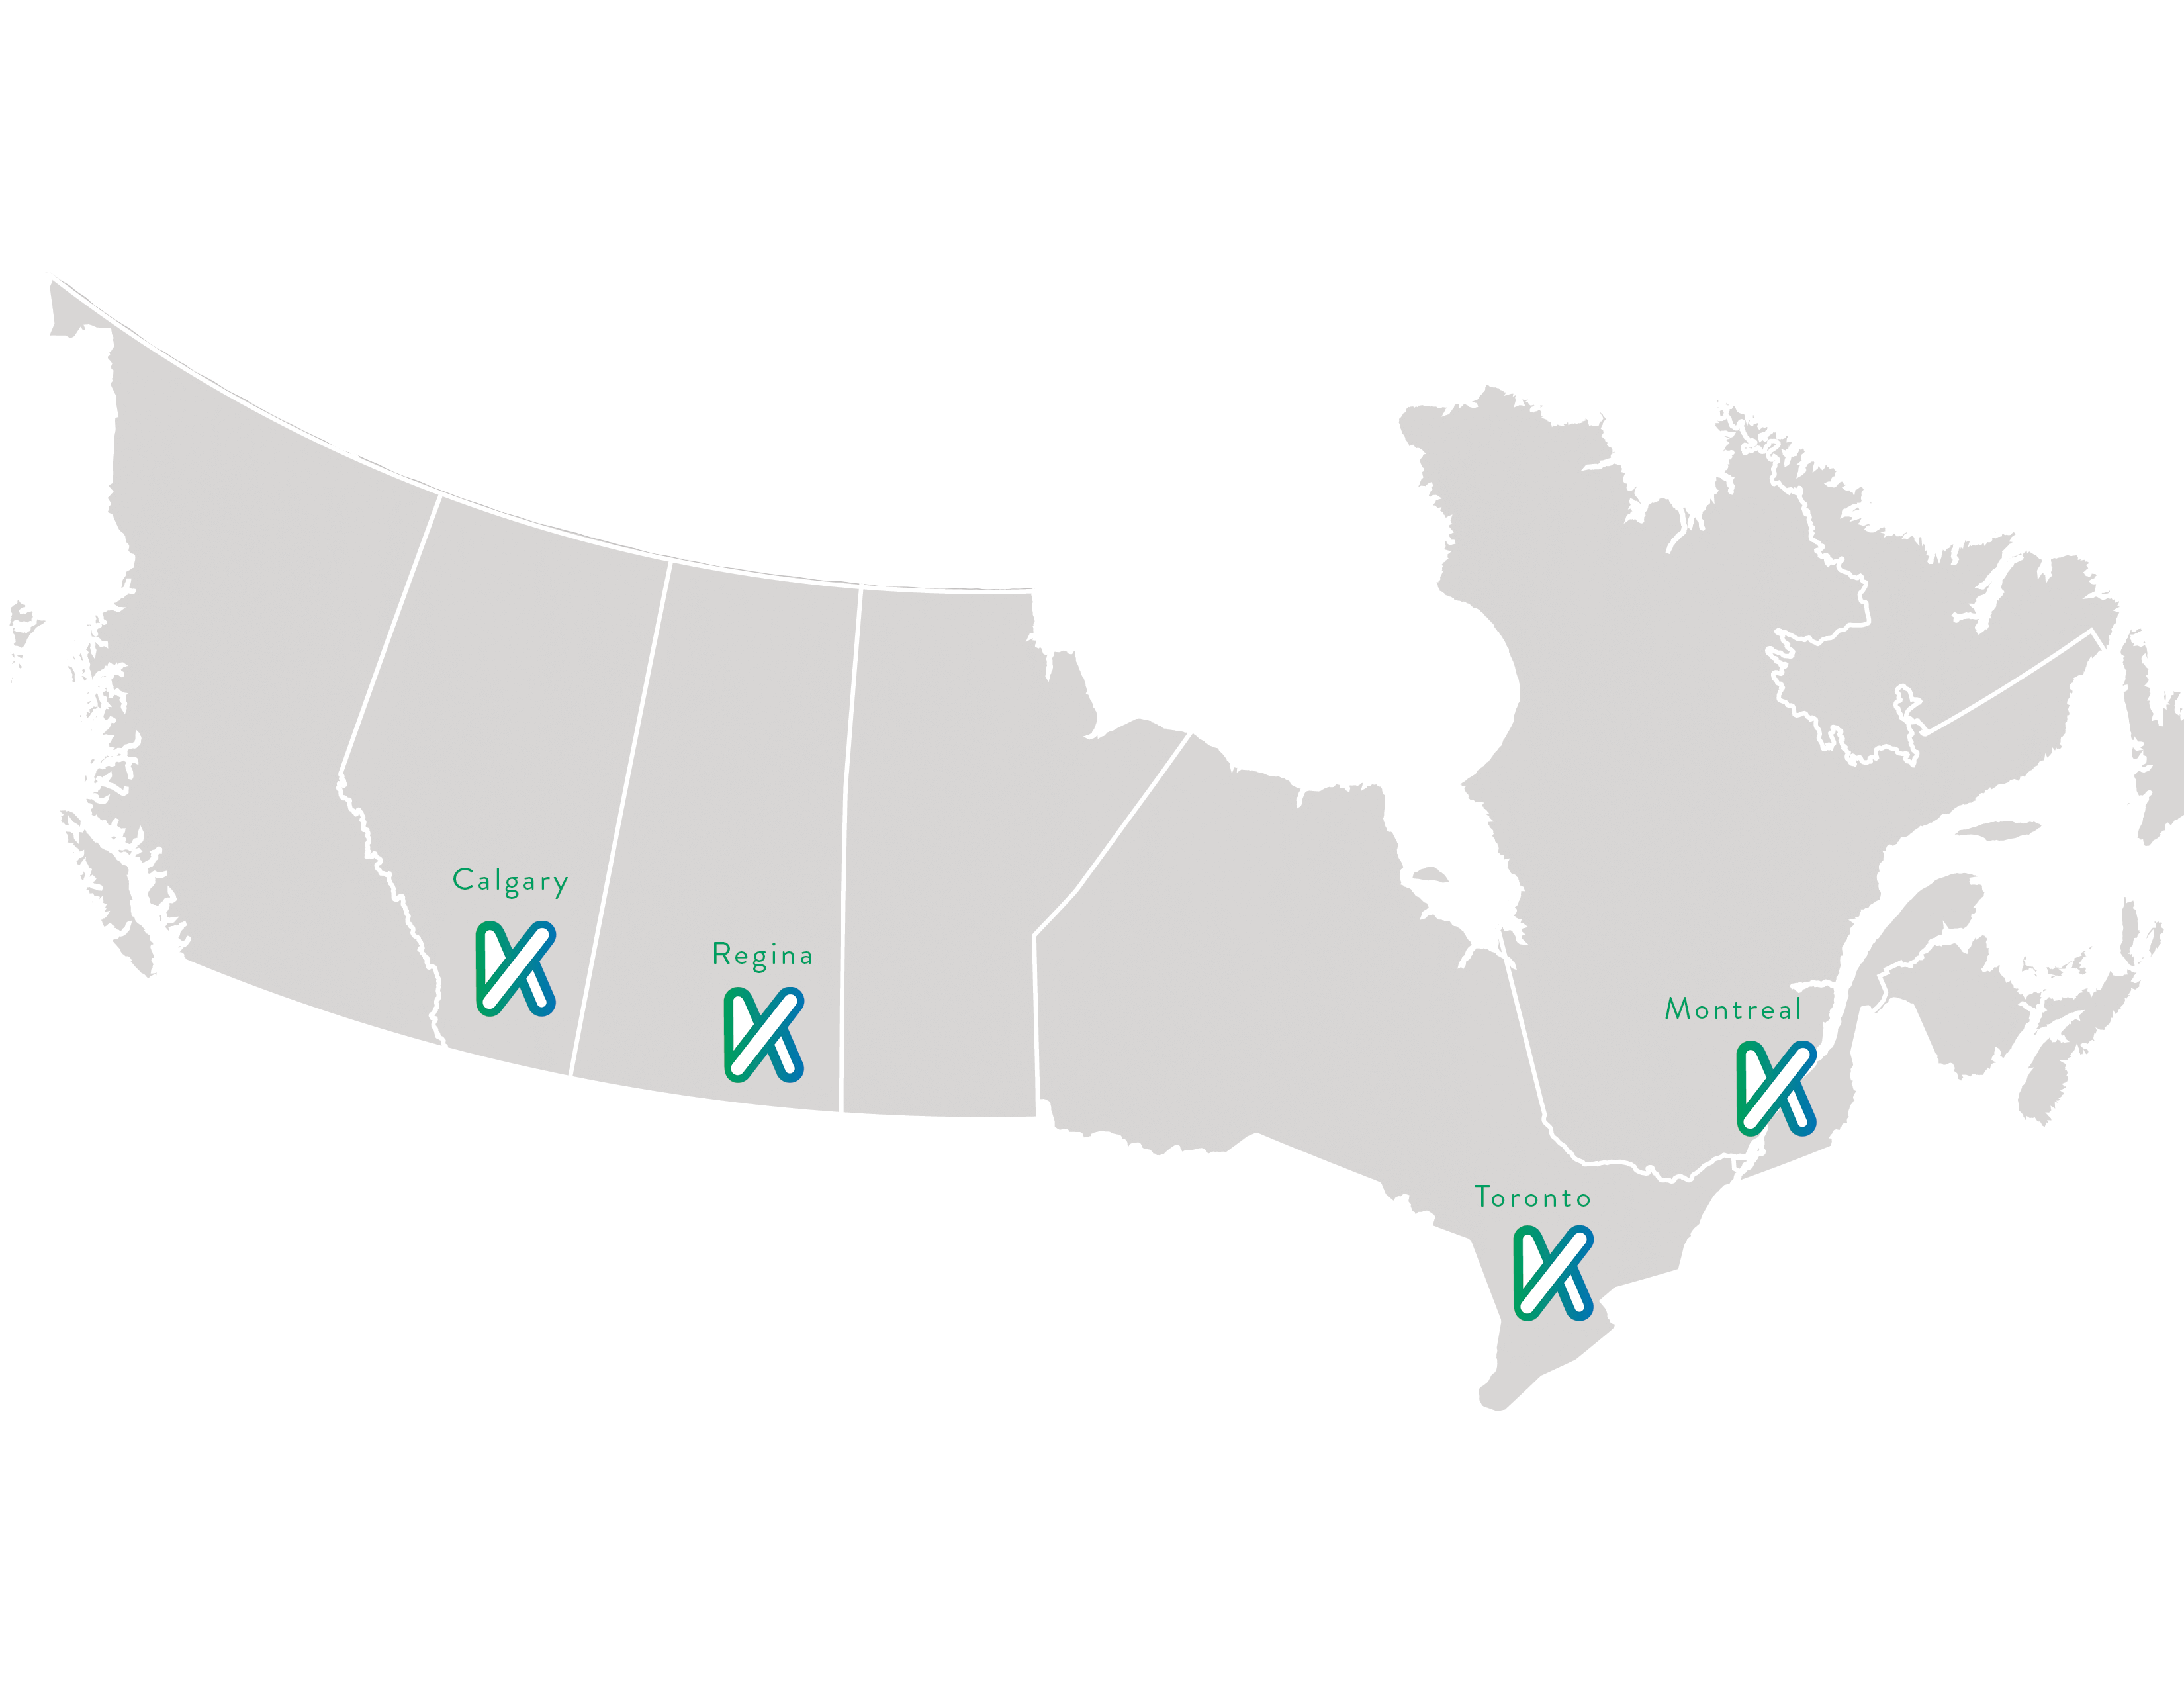 Map of the Kankei team location across Canada